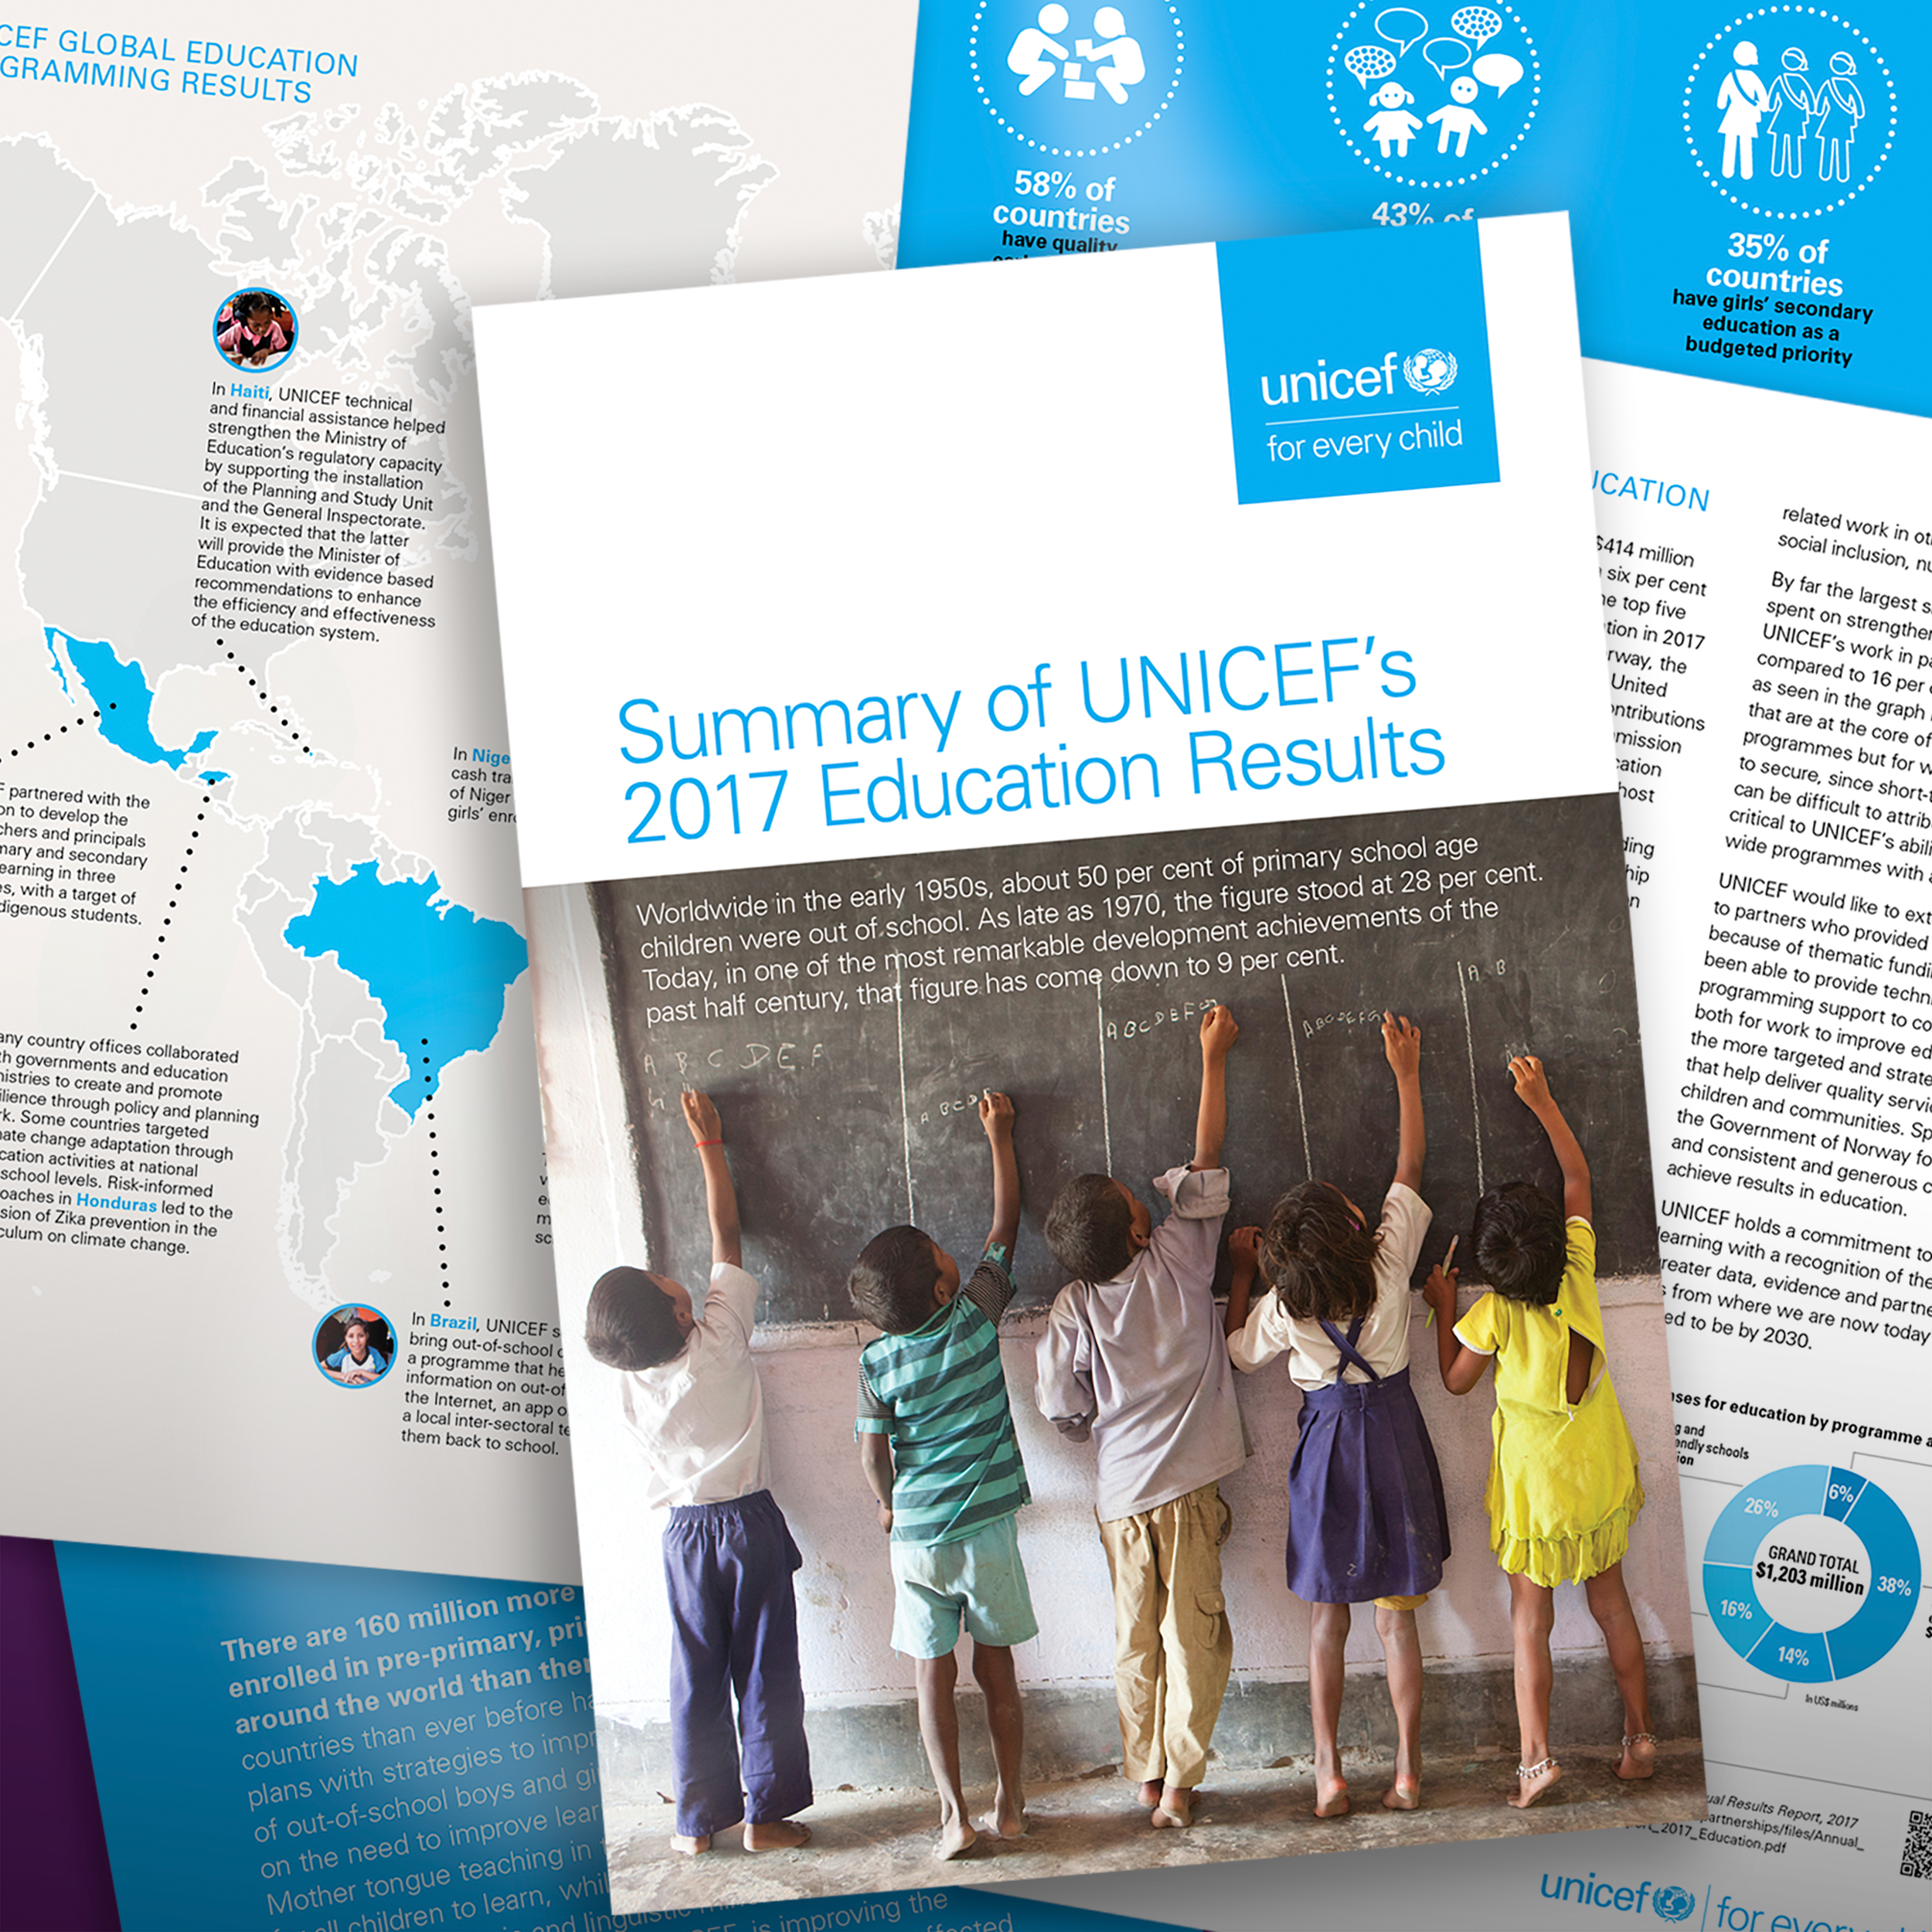 UNICEF, Education Section   This eight-page gatefold brochure highlights the Education Sections 2017 results with unanticipated fanfare.